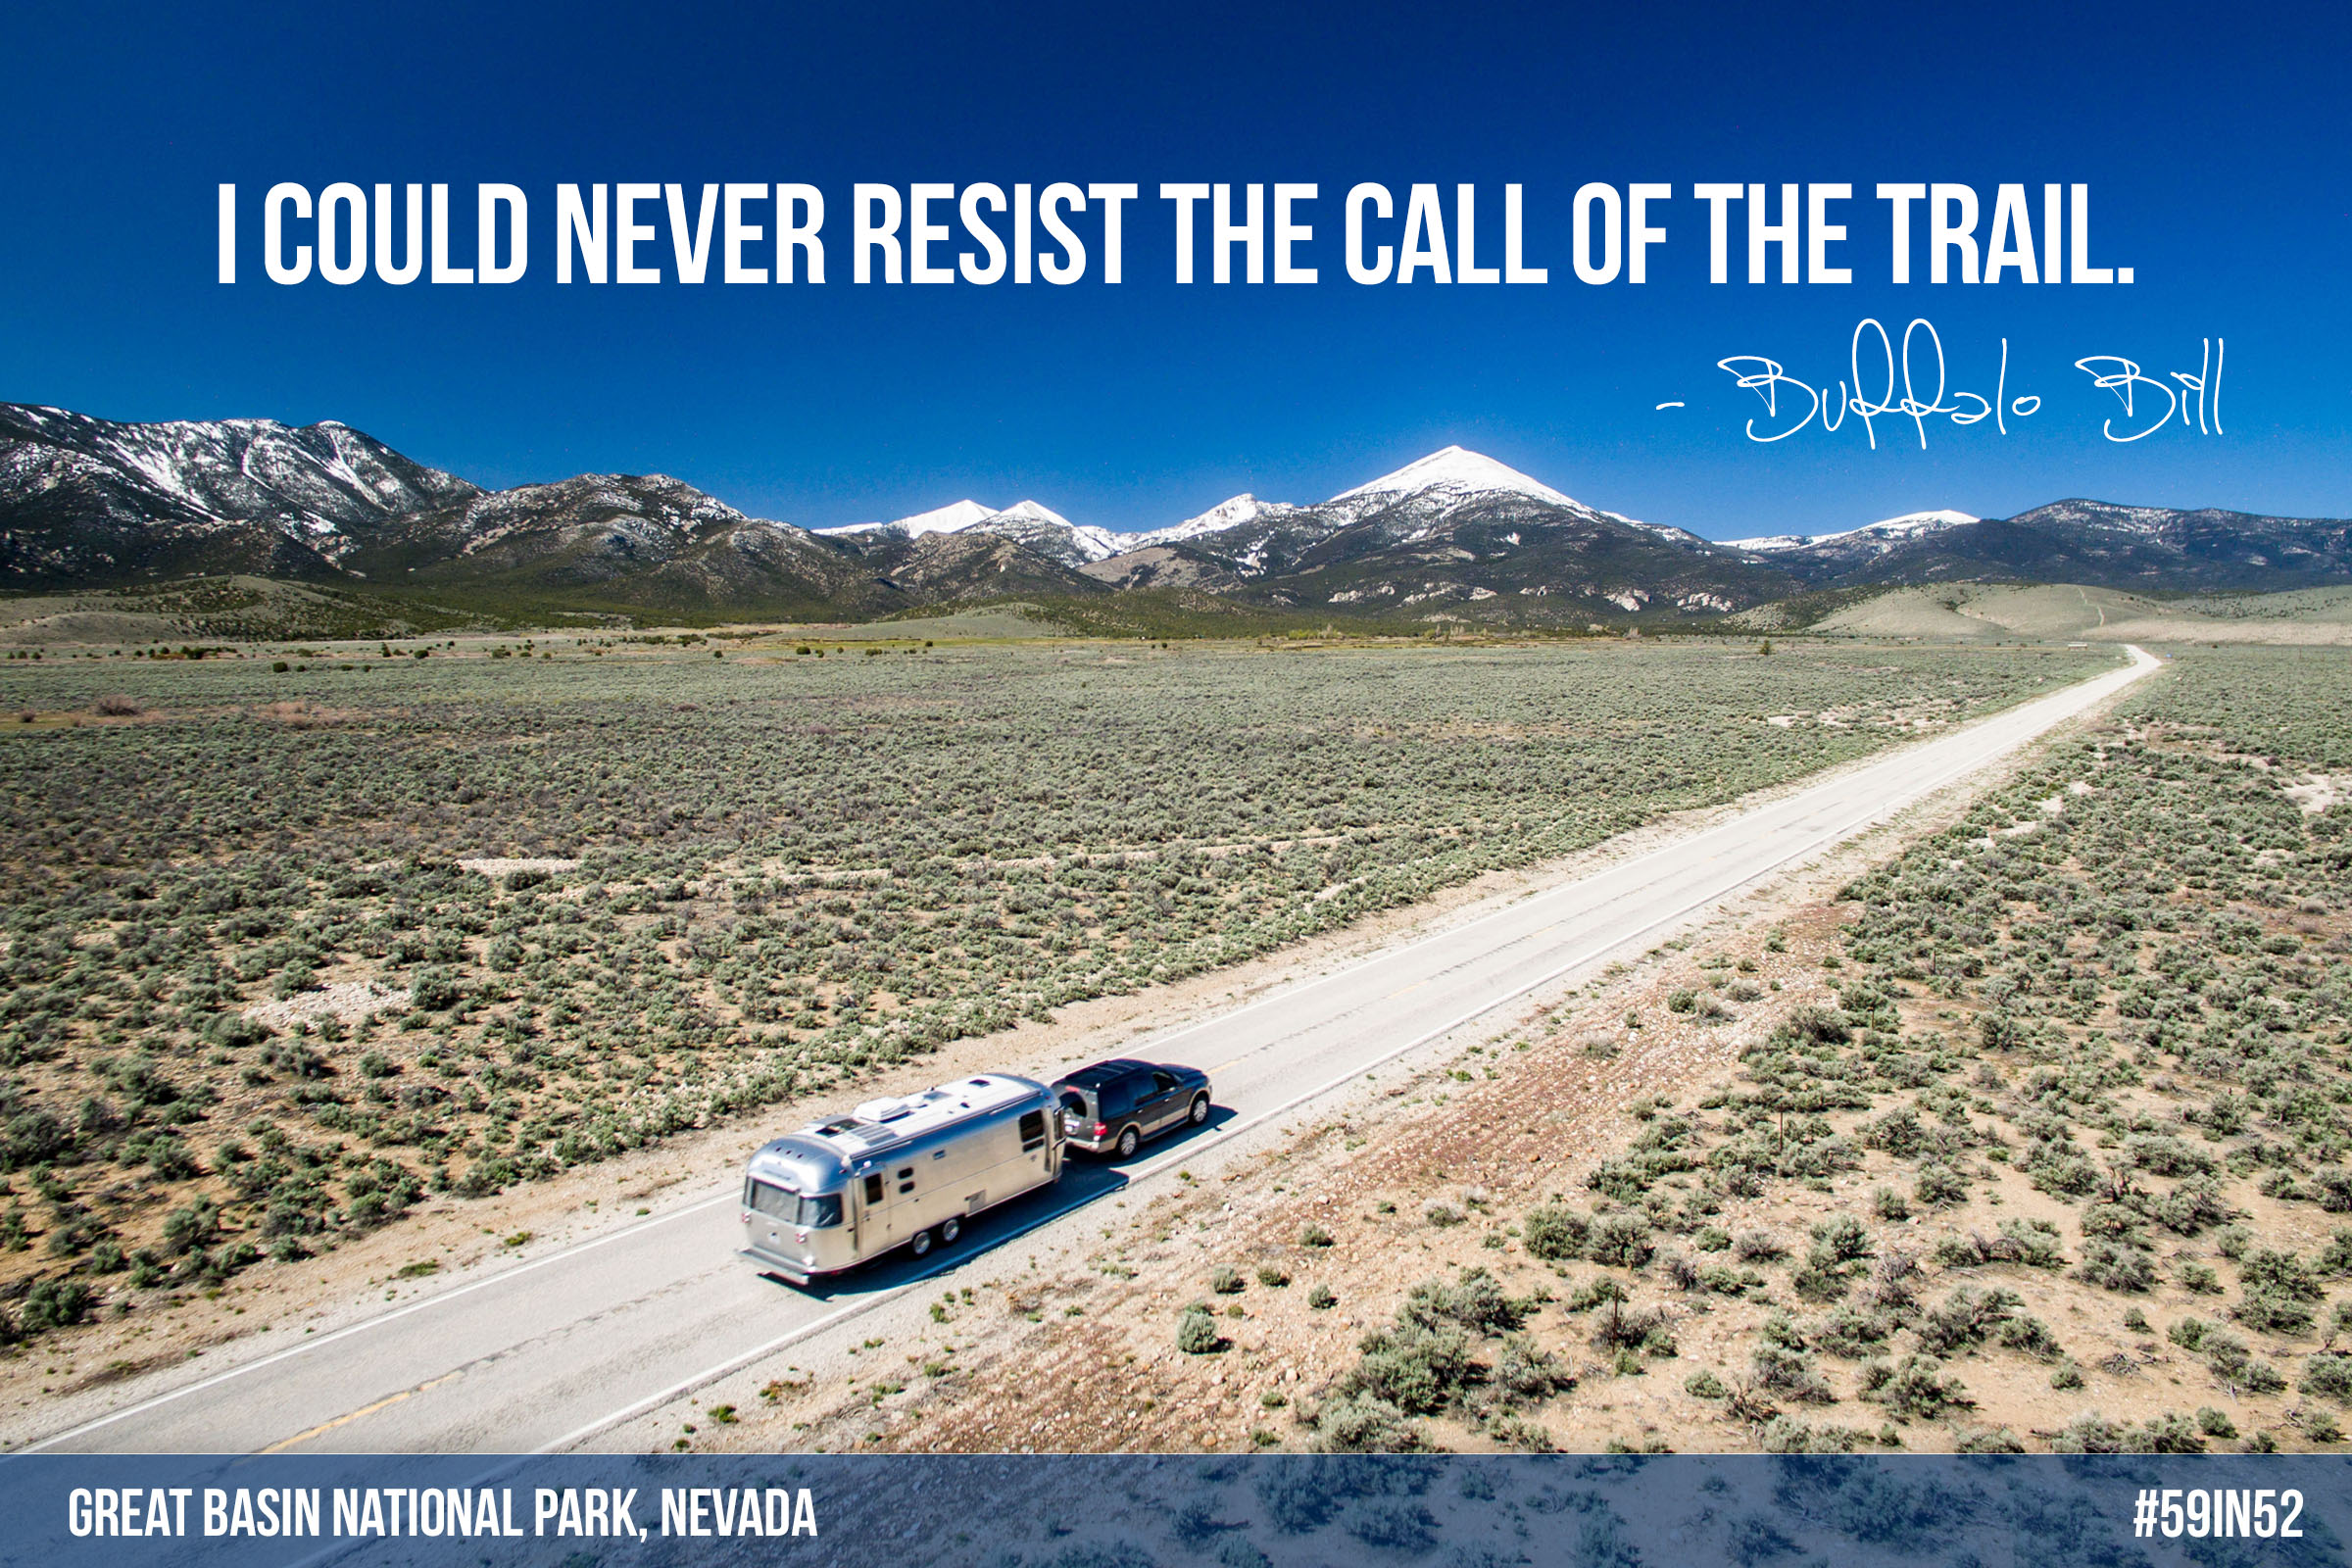 'I could never resist the call of the open trail.' - Buffalo Bill